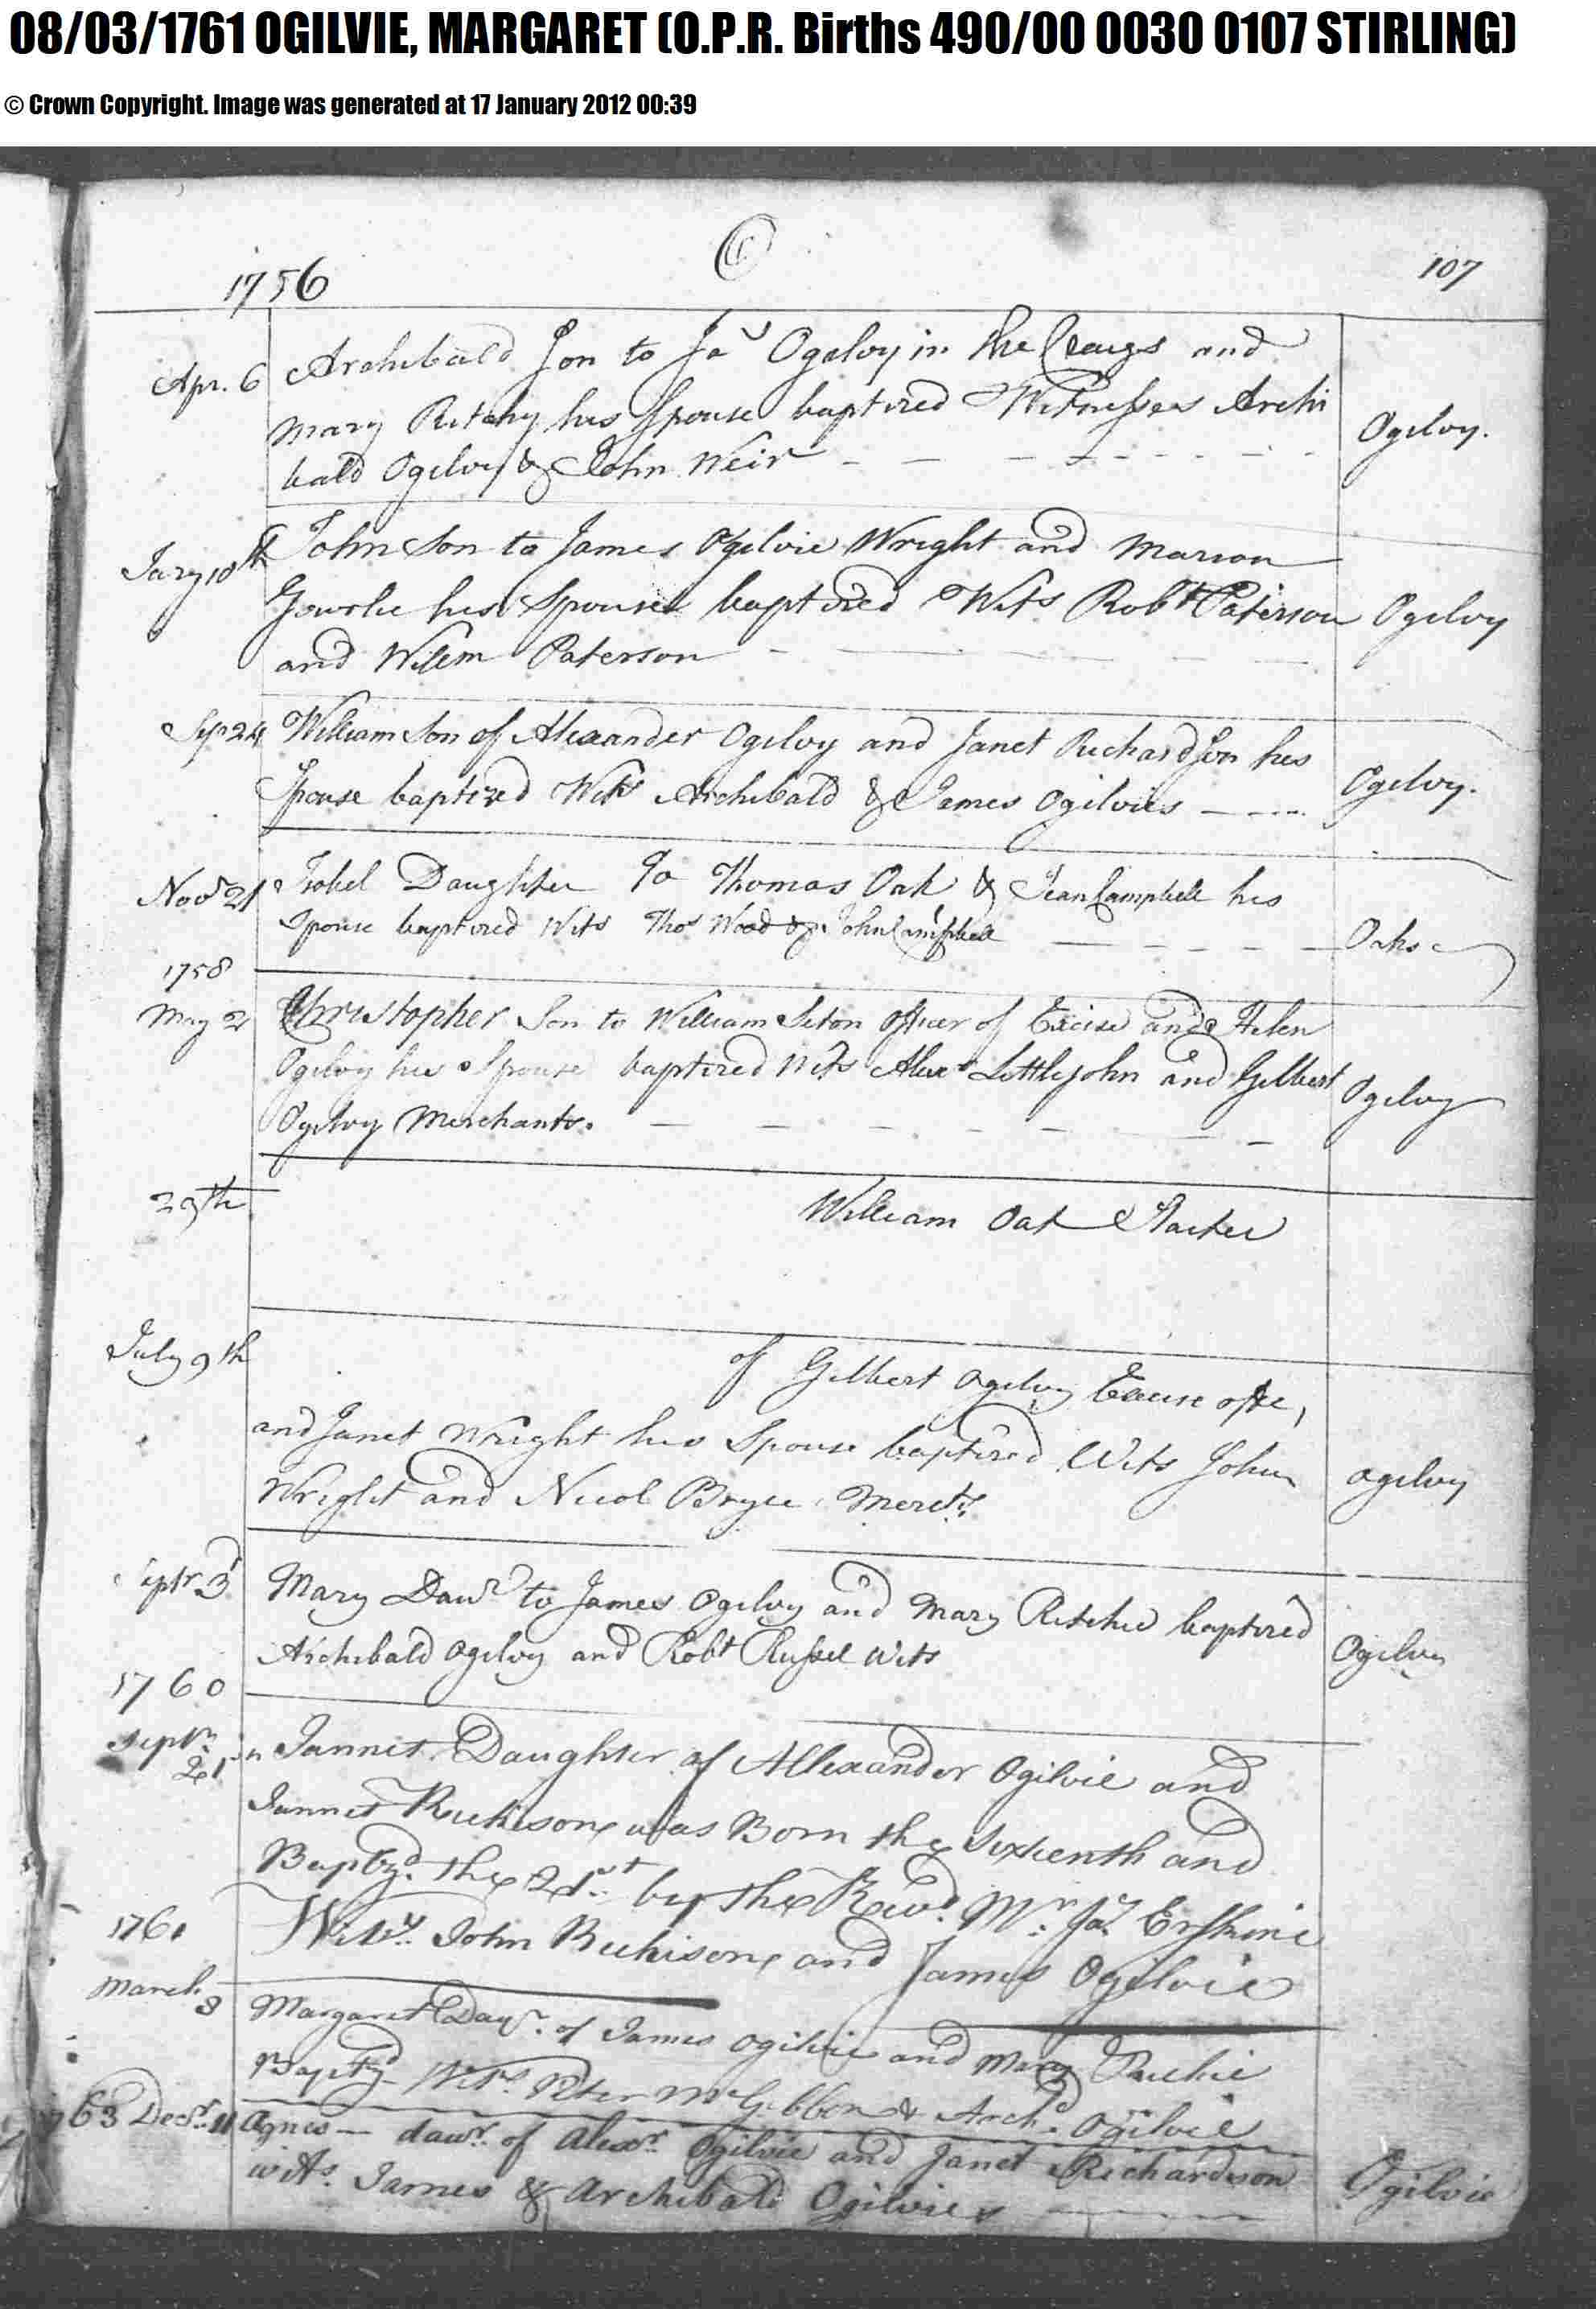 Birth certificate genealogy and jure sanguinis birth record 8 mar 1761 for margaret ogilvie to james ogilvie and mary richie 1betcityfo Gallery